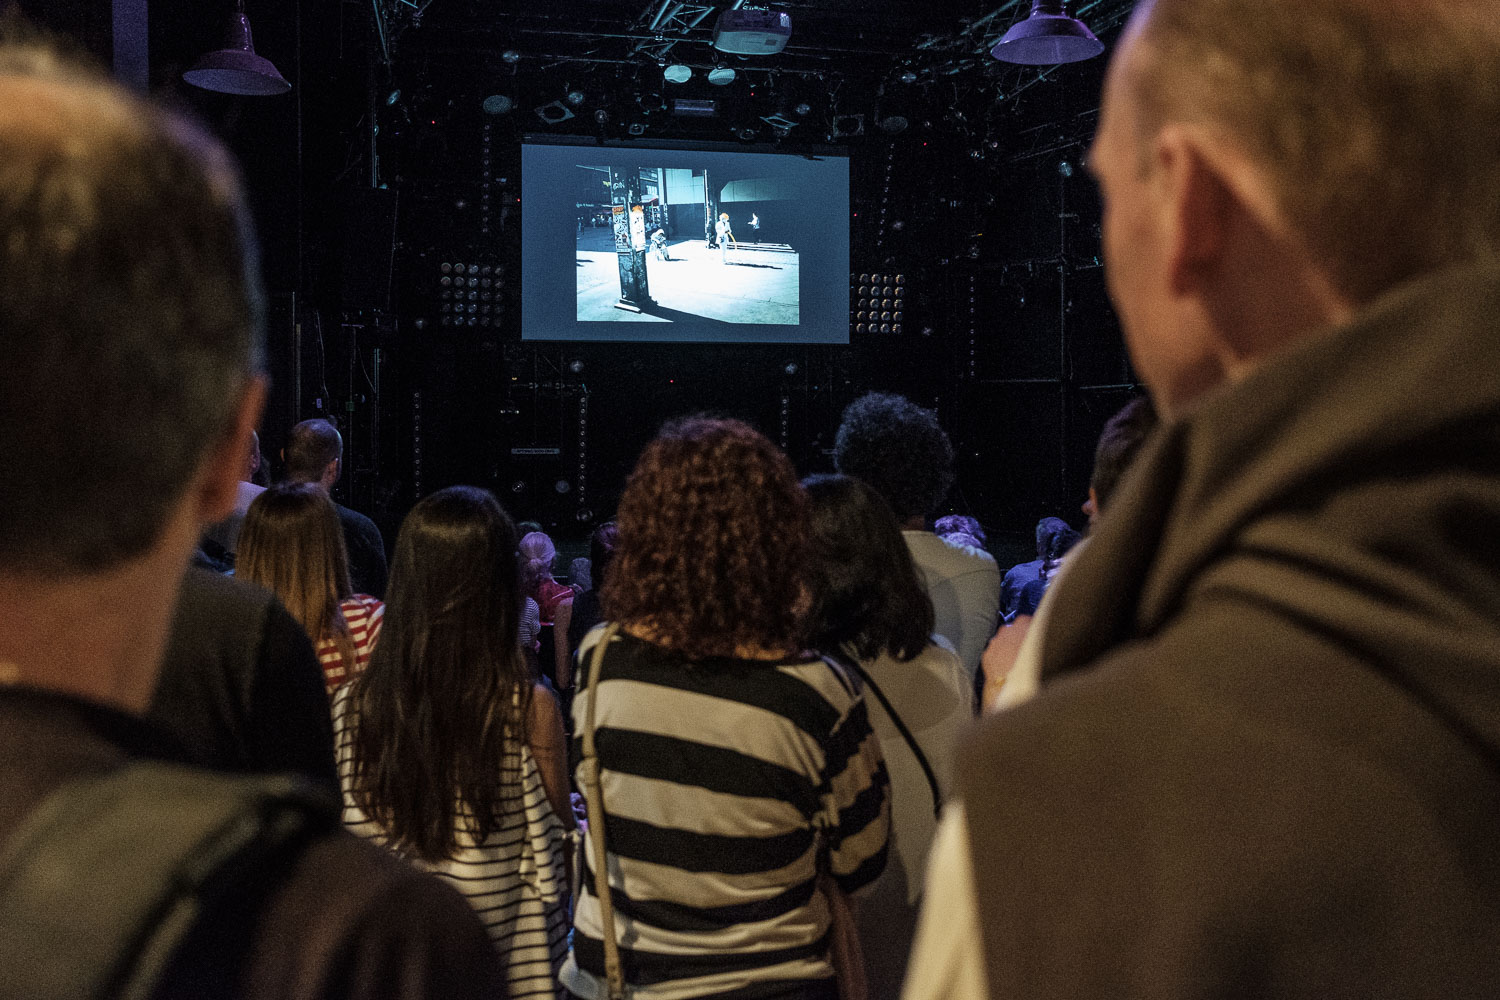 Luxembourg Street Photography Festival at Rotondes - Slide Night - LSPF 2018 - Photography by Christophe Van Biesen - Luxembourg Landscape and Travel Photographer